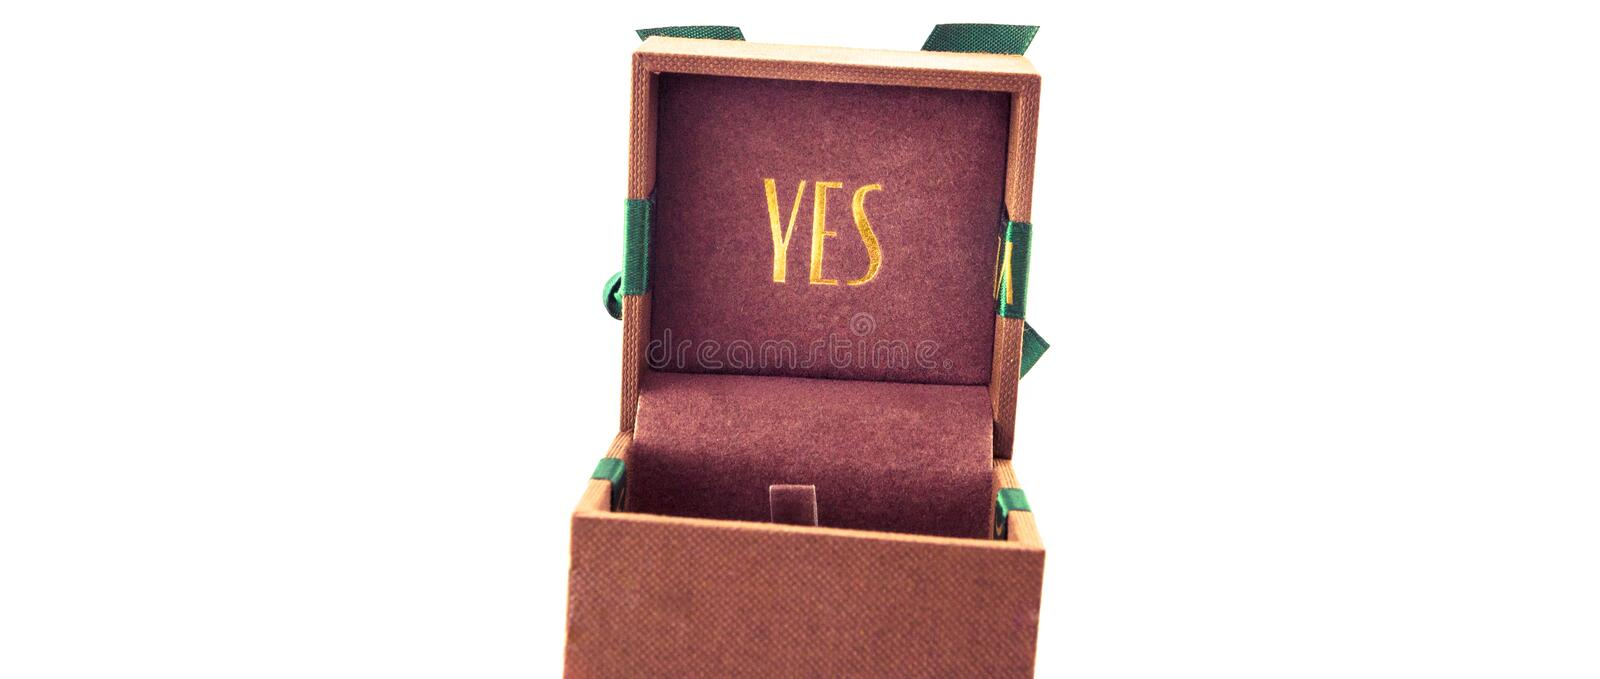 Poznan/Poland, 25 March 2014 - Will you marry me, Yes, wedding ring, marriage stock photography